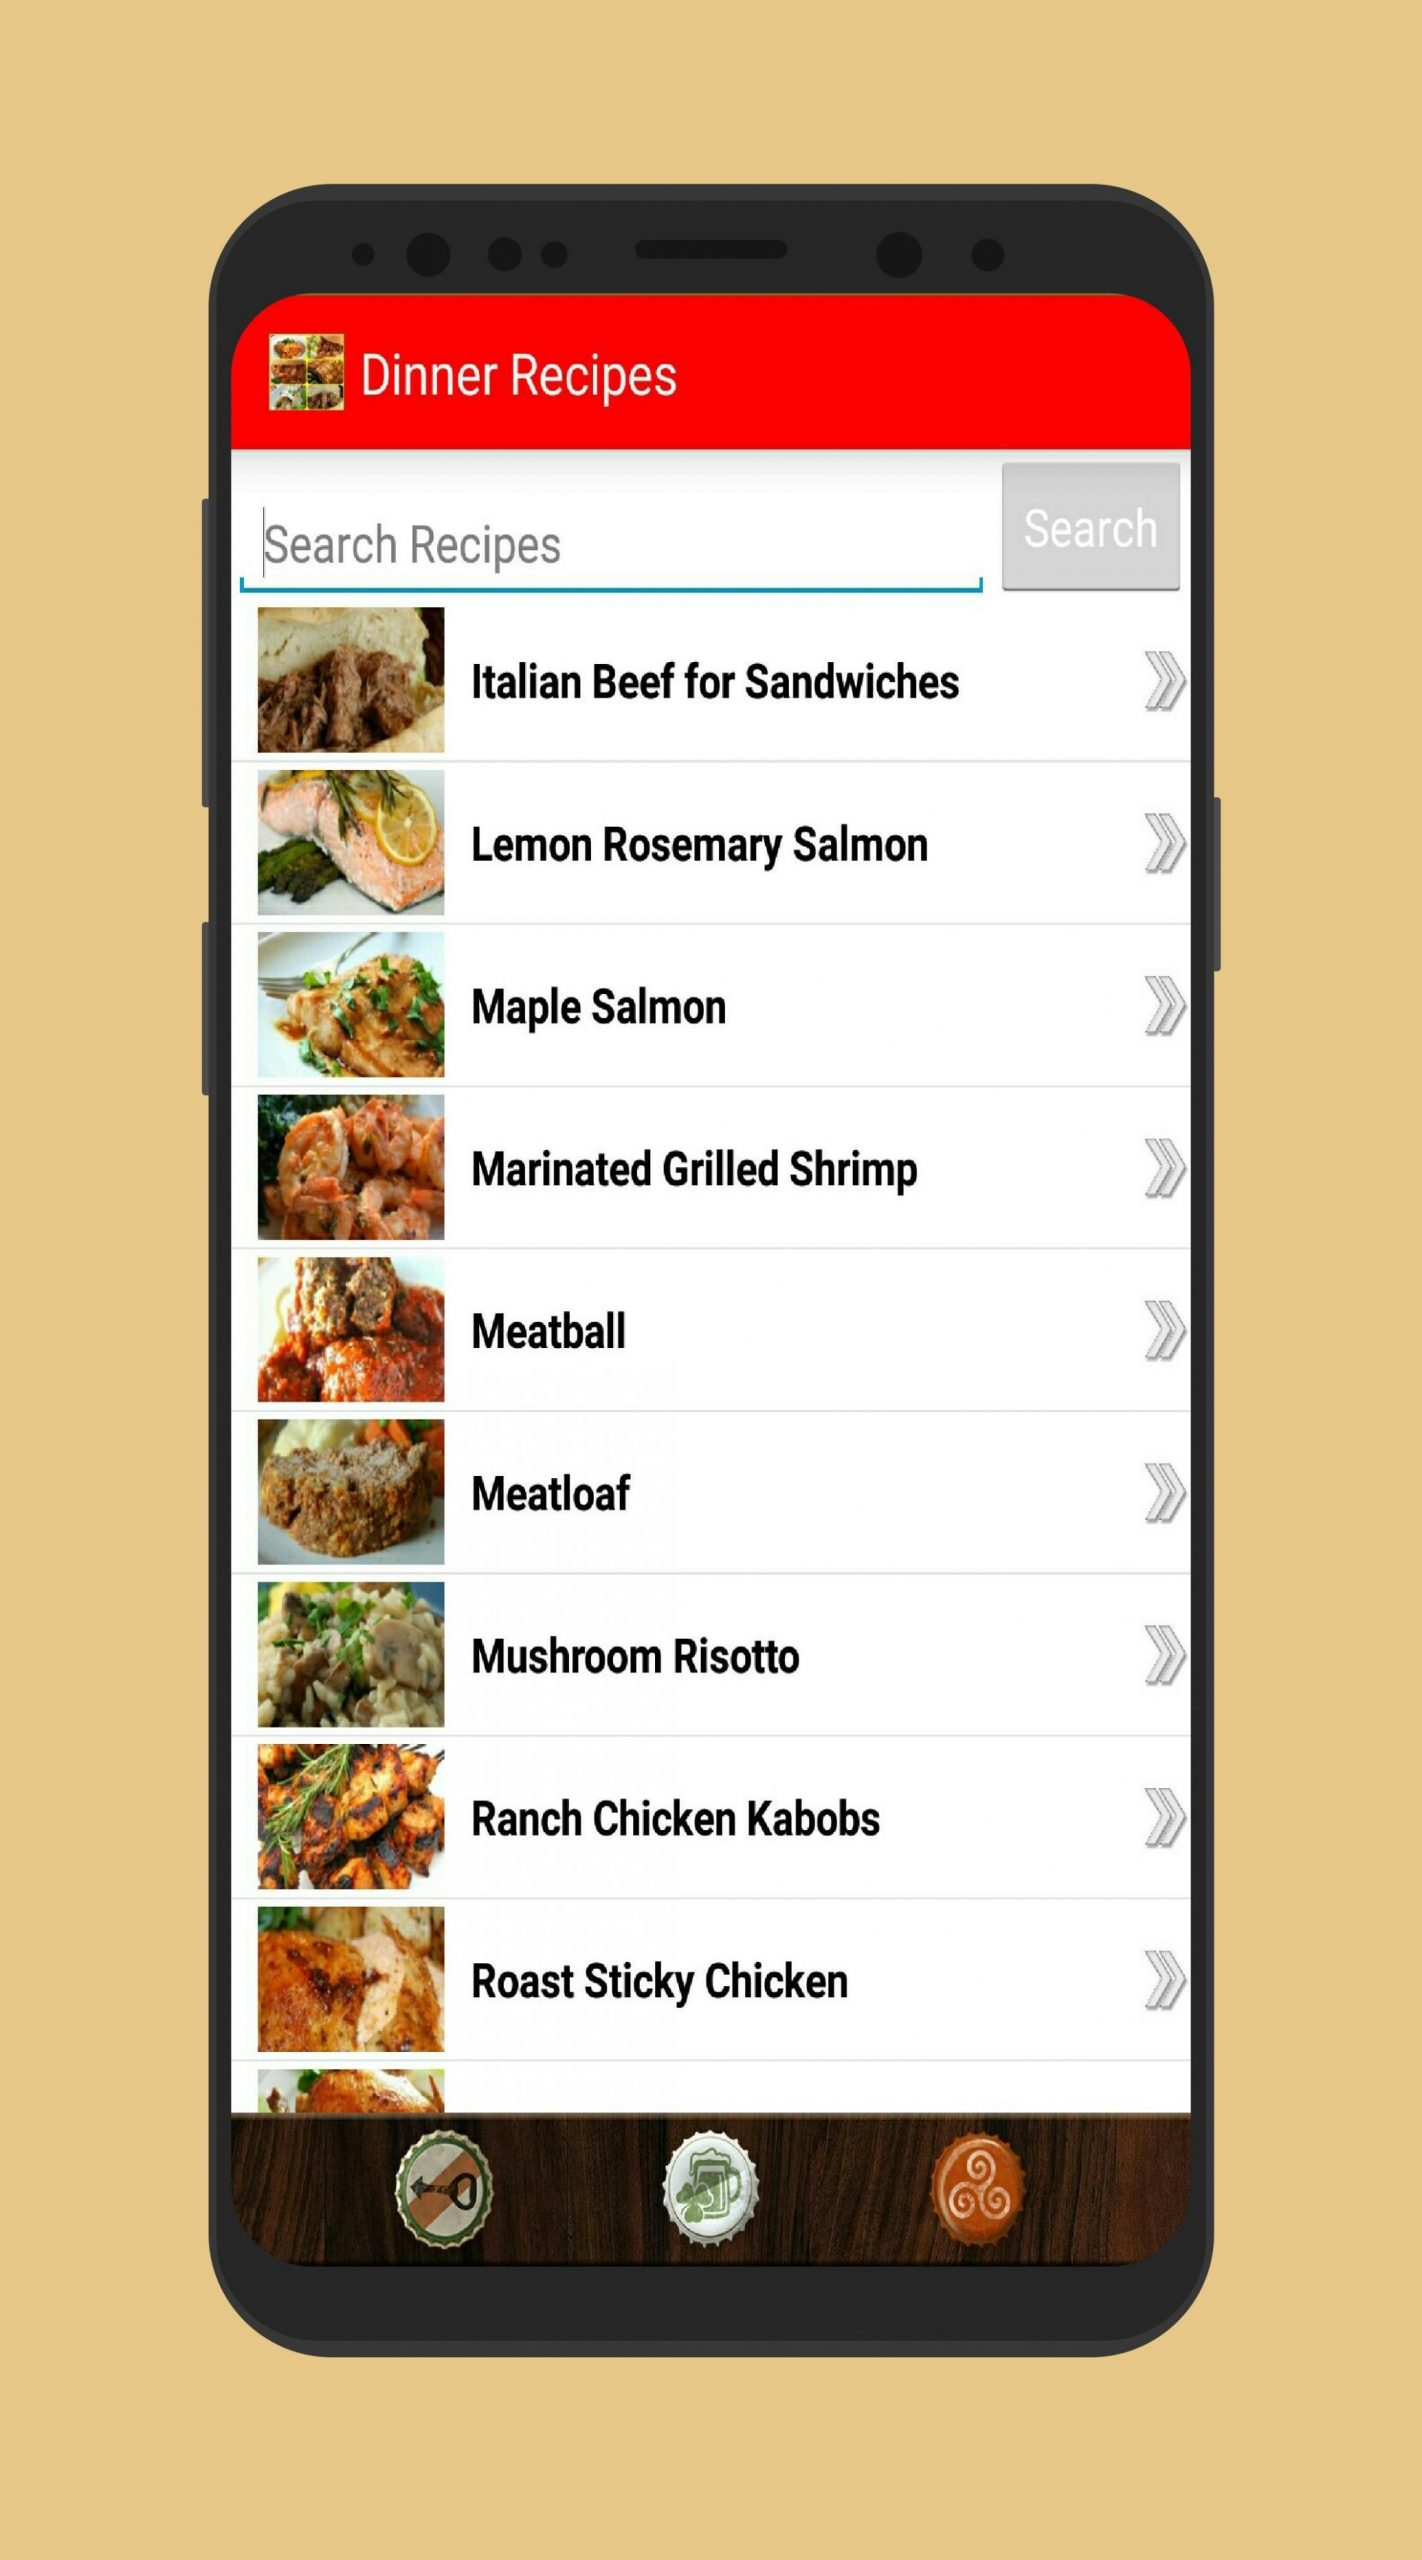 Easy Recipes : Dinner Offline App for Android - APK Download - Easy Recipes App